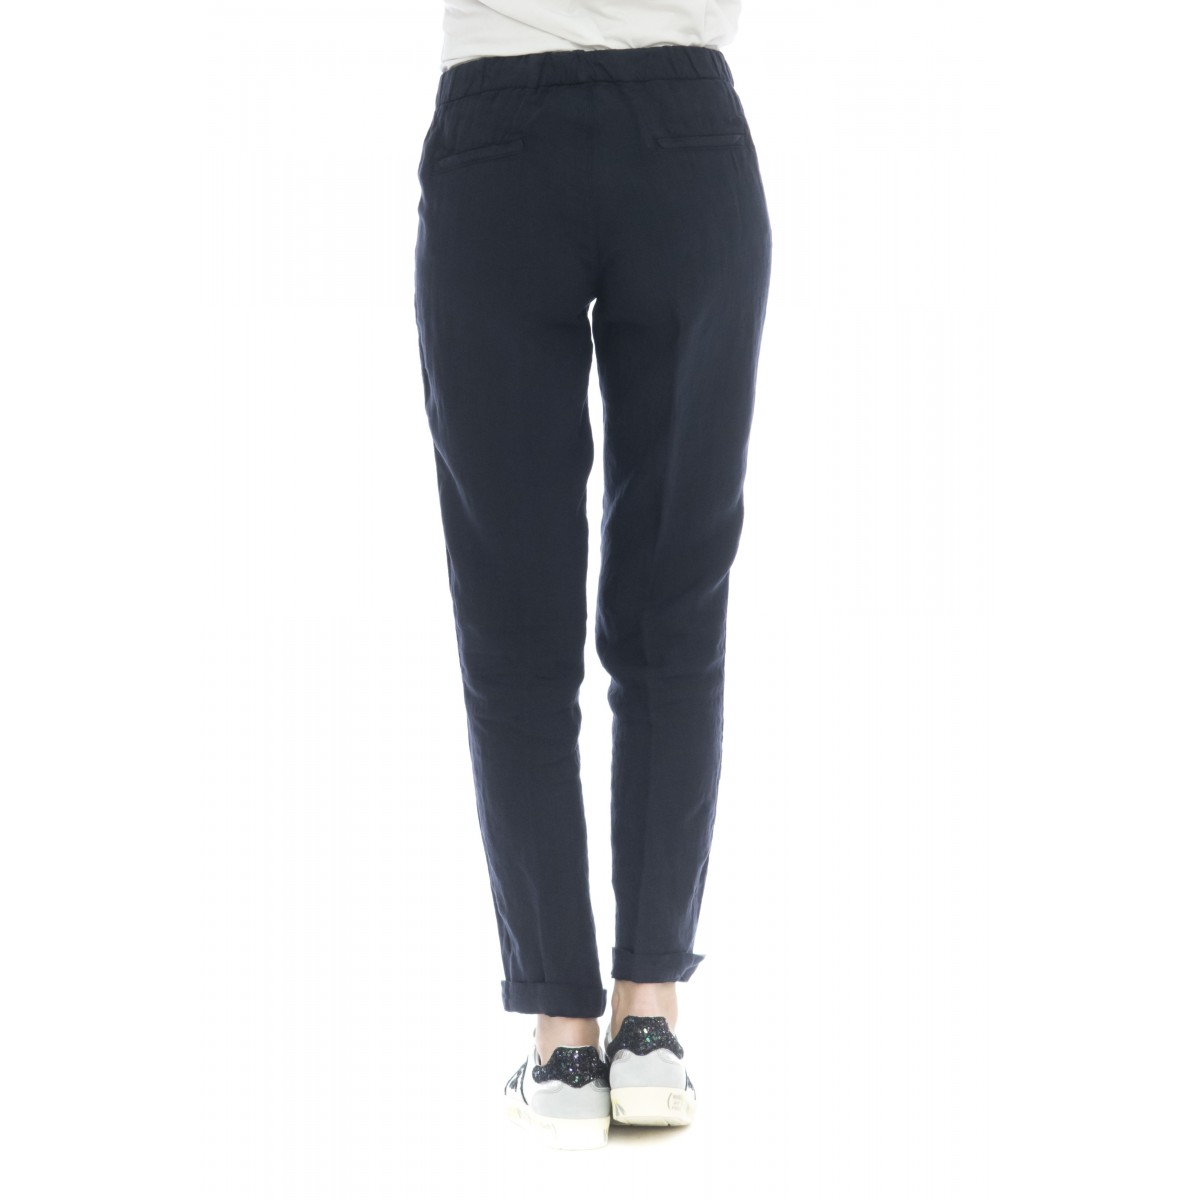 Pantalone donna - Anna 4279 lino coulisse